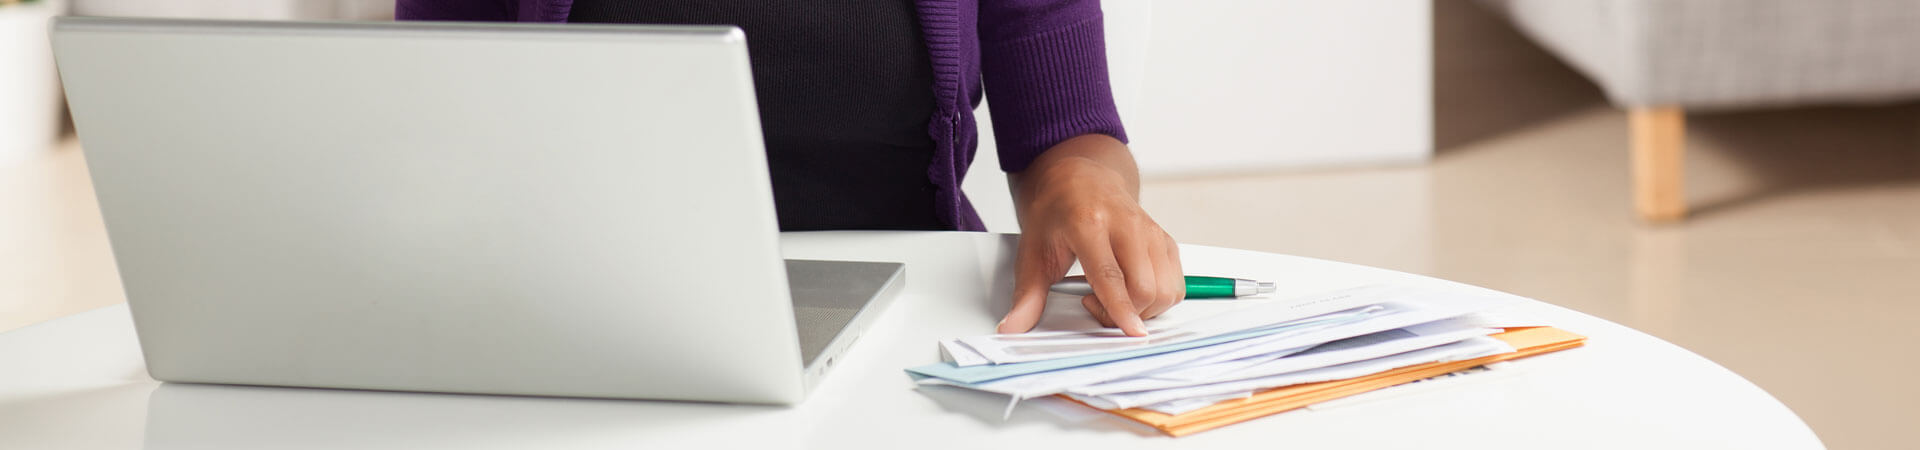 Website banner showing a person using a laptop pointing at some mail on the counter